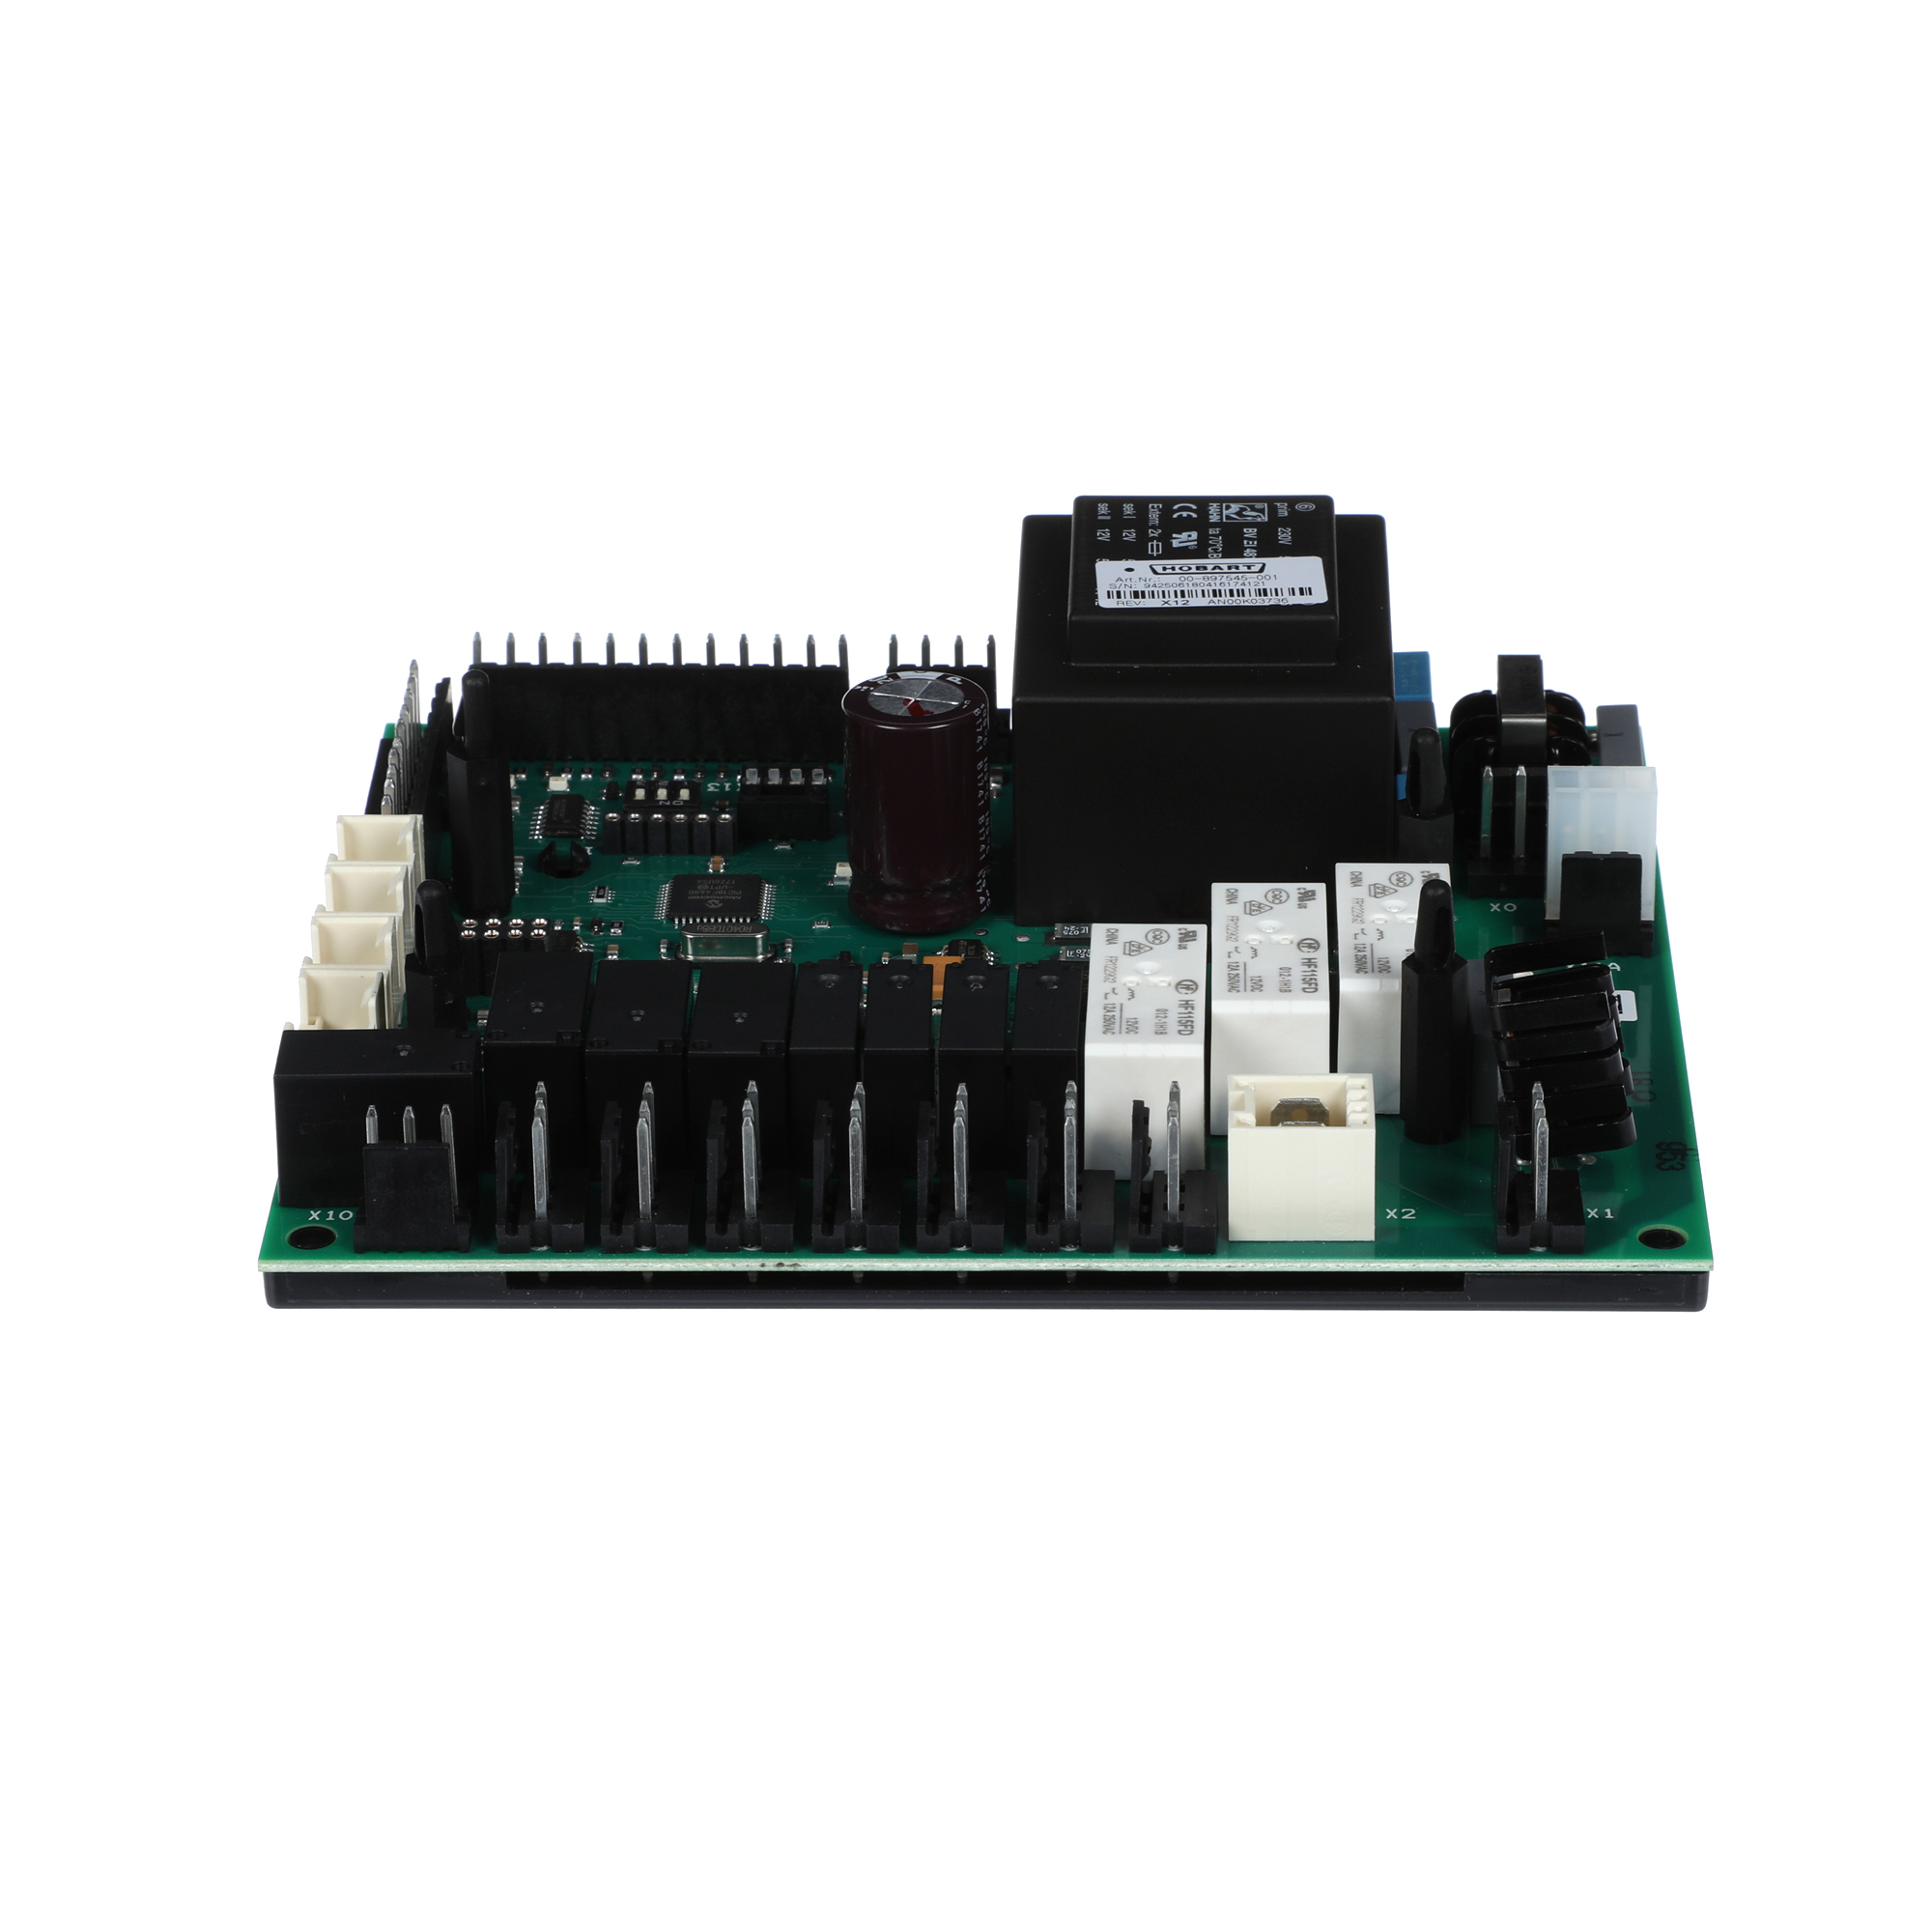 CONTROL UNIT (WITHOUT E-PROM)